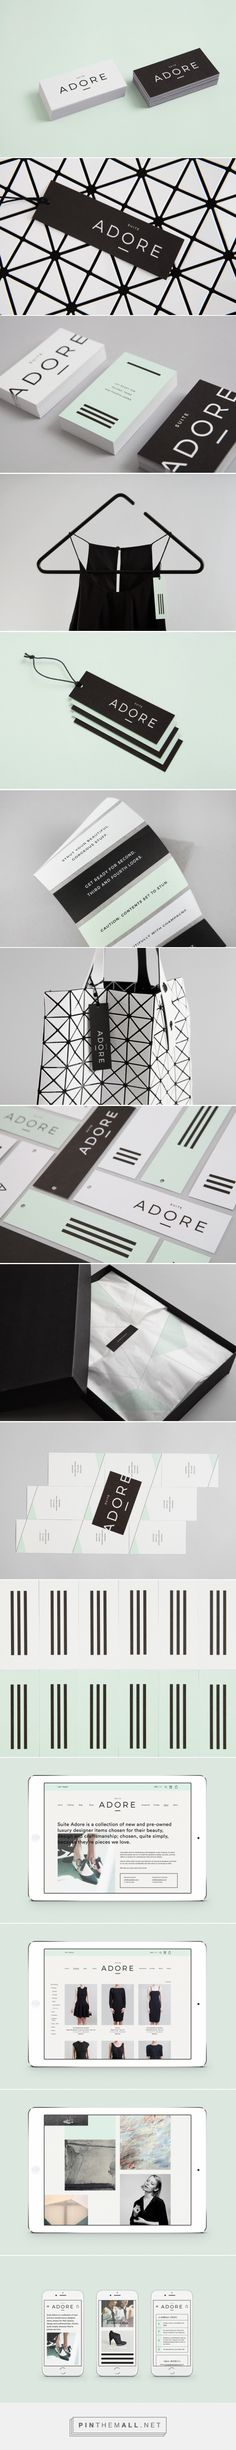 db7a55bf0 Blok hangs up another great brand identity, this time for luxury retailer Suite  Adore | Creative Boom... - a grouped images picture